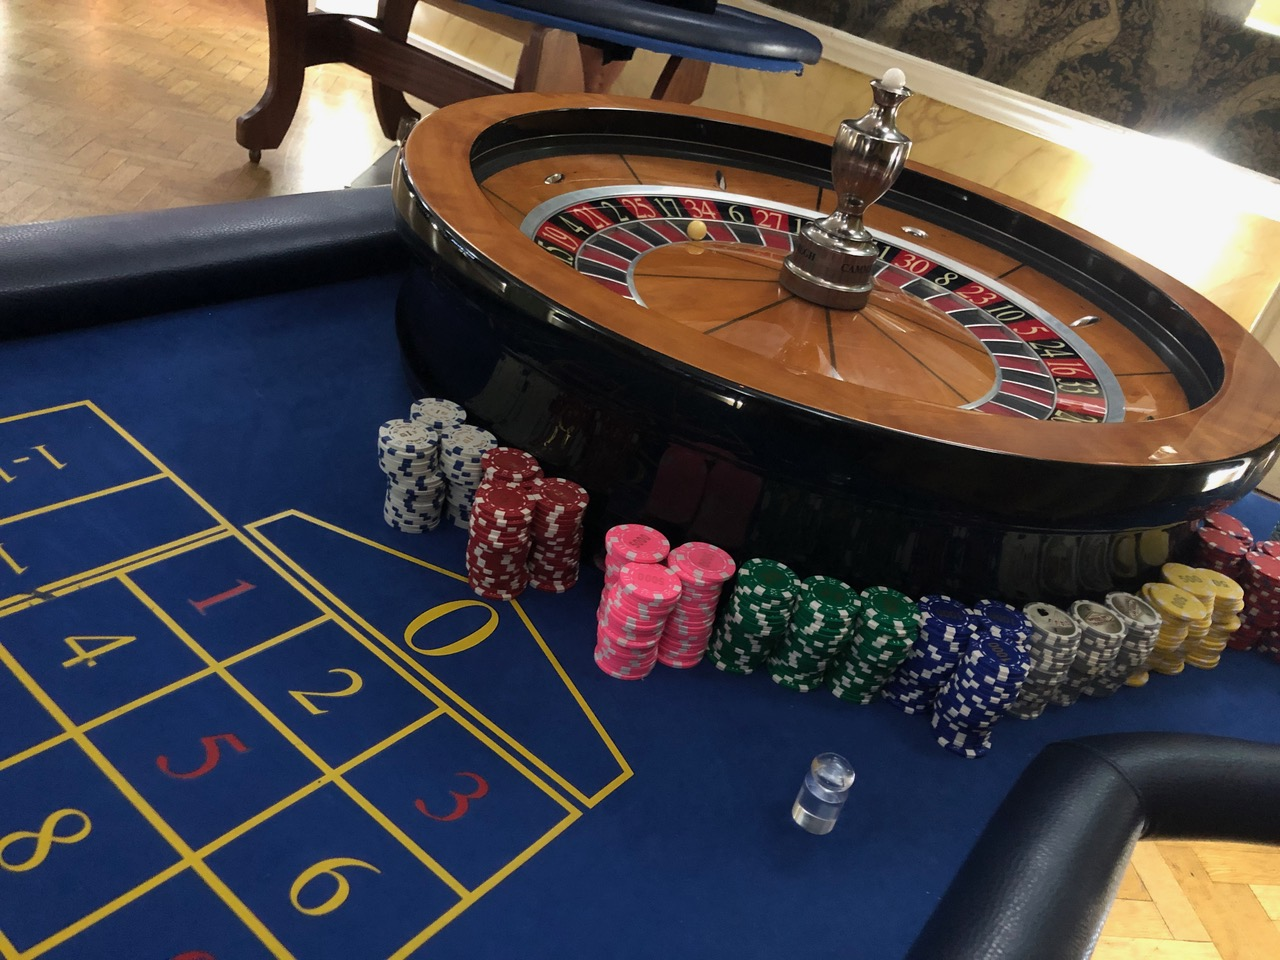 Fun Casino Tables for Weddings, Corporate Events and Parties